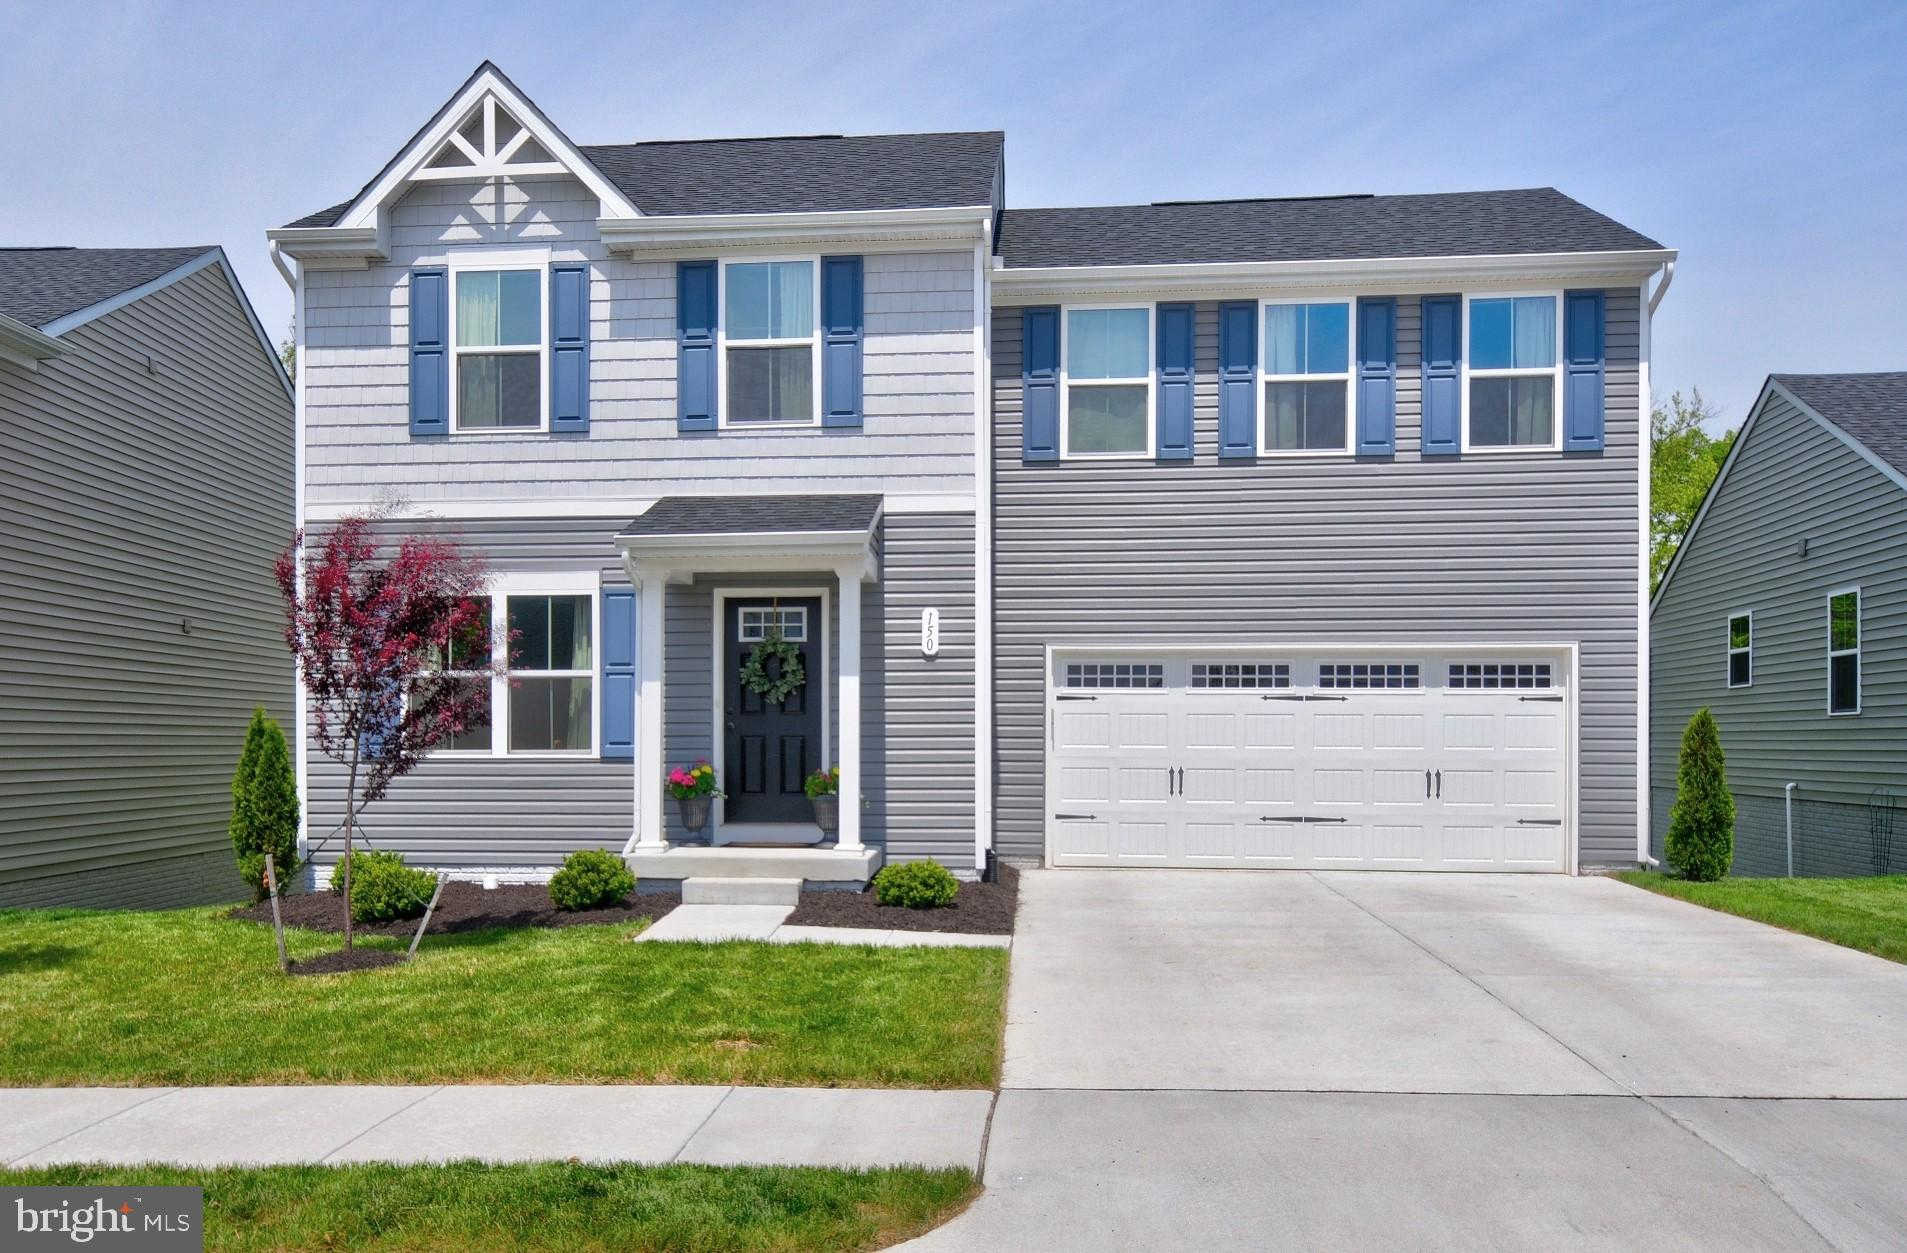 150 Coville Street, Middletown, VA 22645 now has a new price of $359,900!